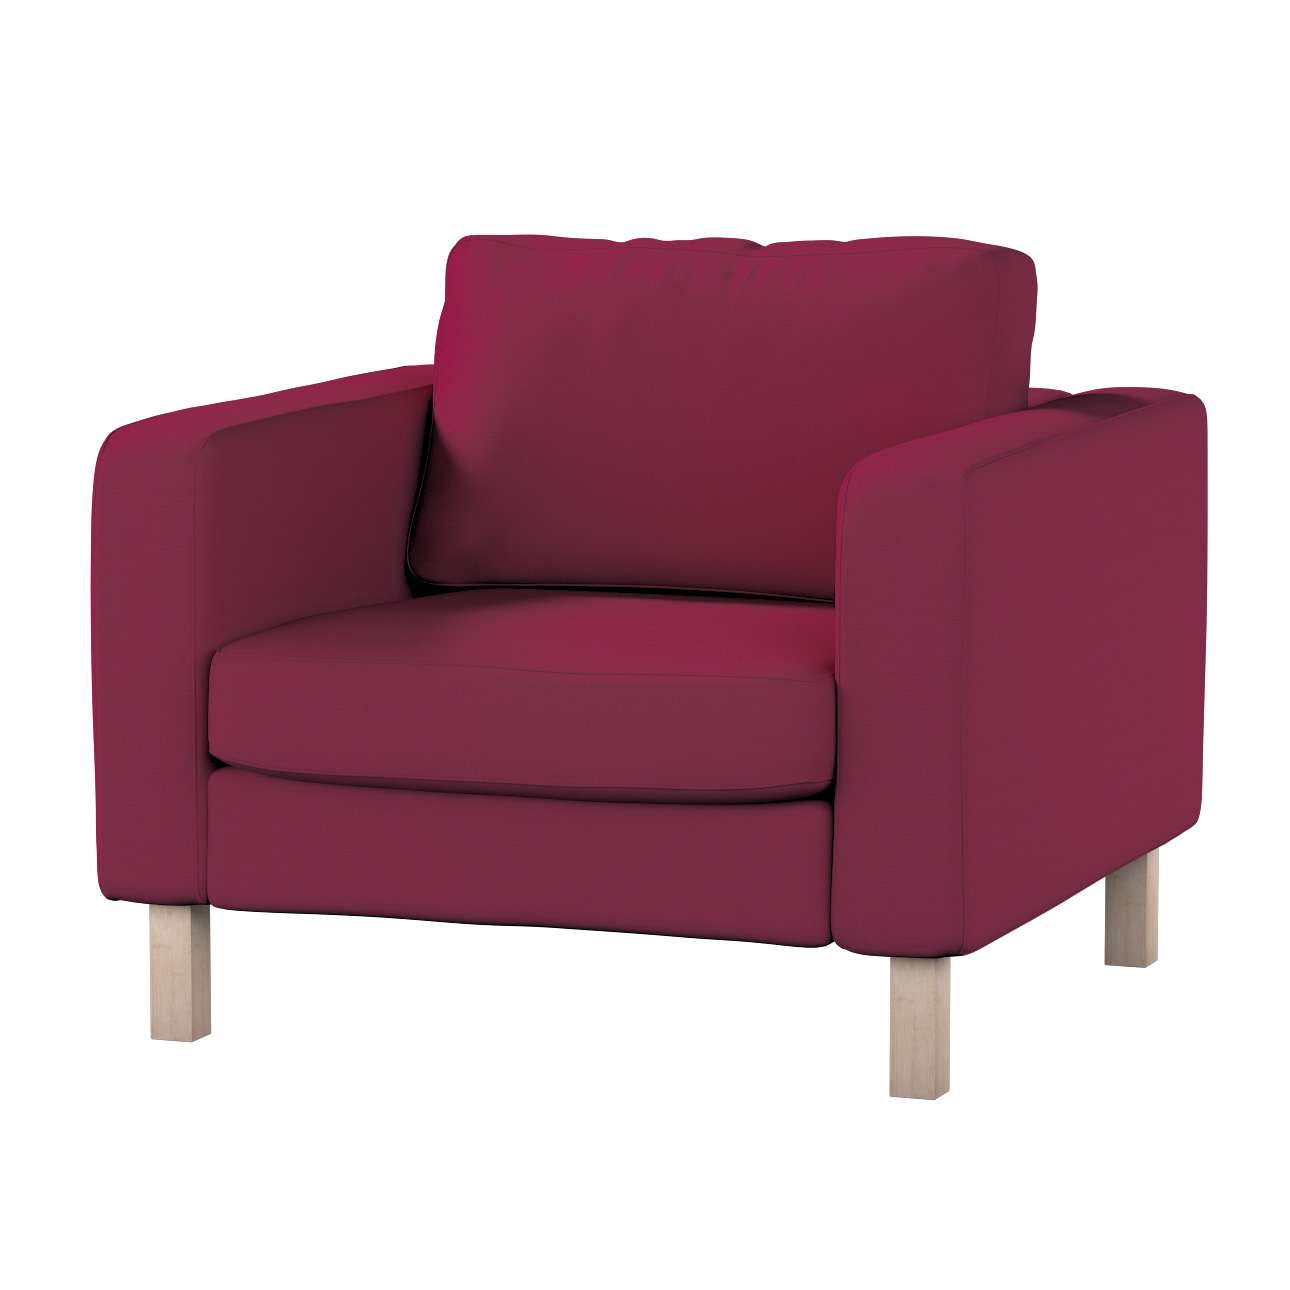 Karlstad armchair cover Karlstad armchair cover in collection Cotton Panama, fabric: 702-32